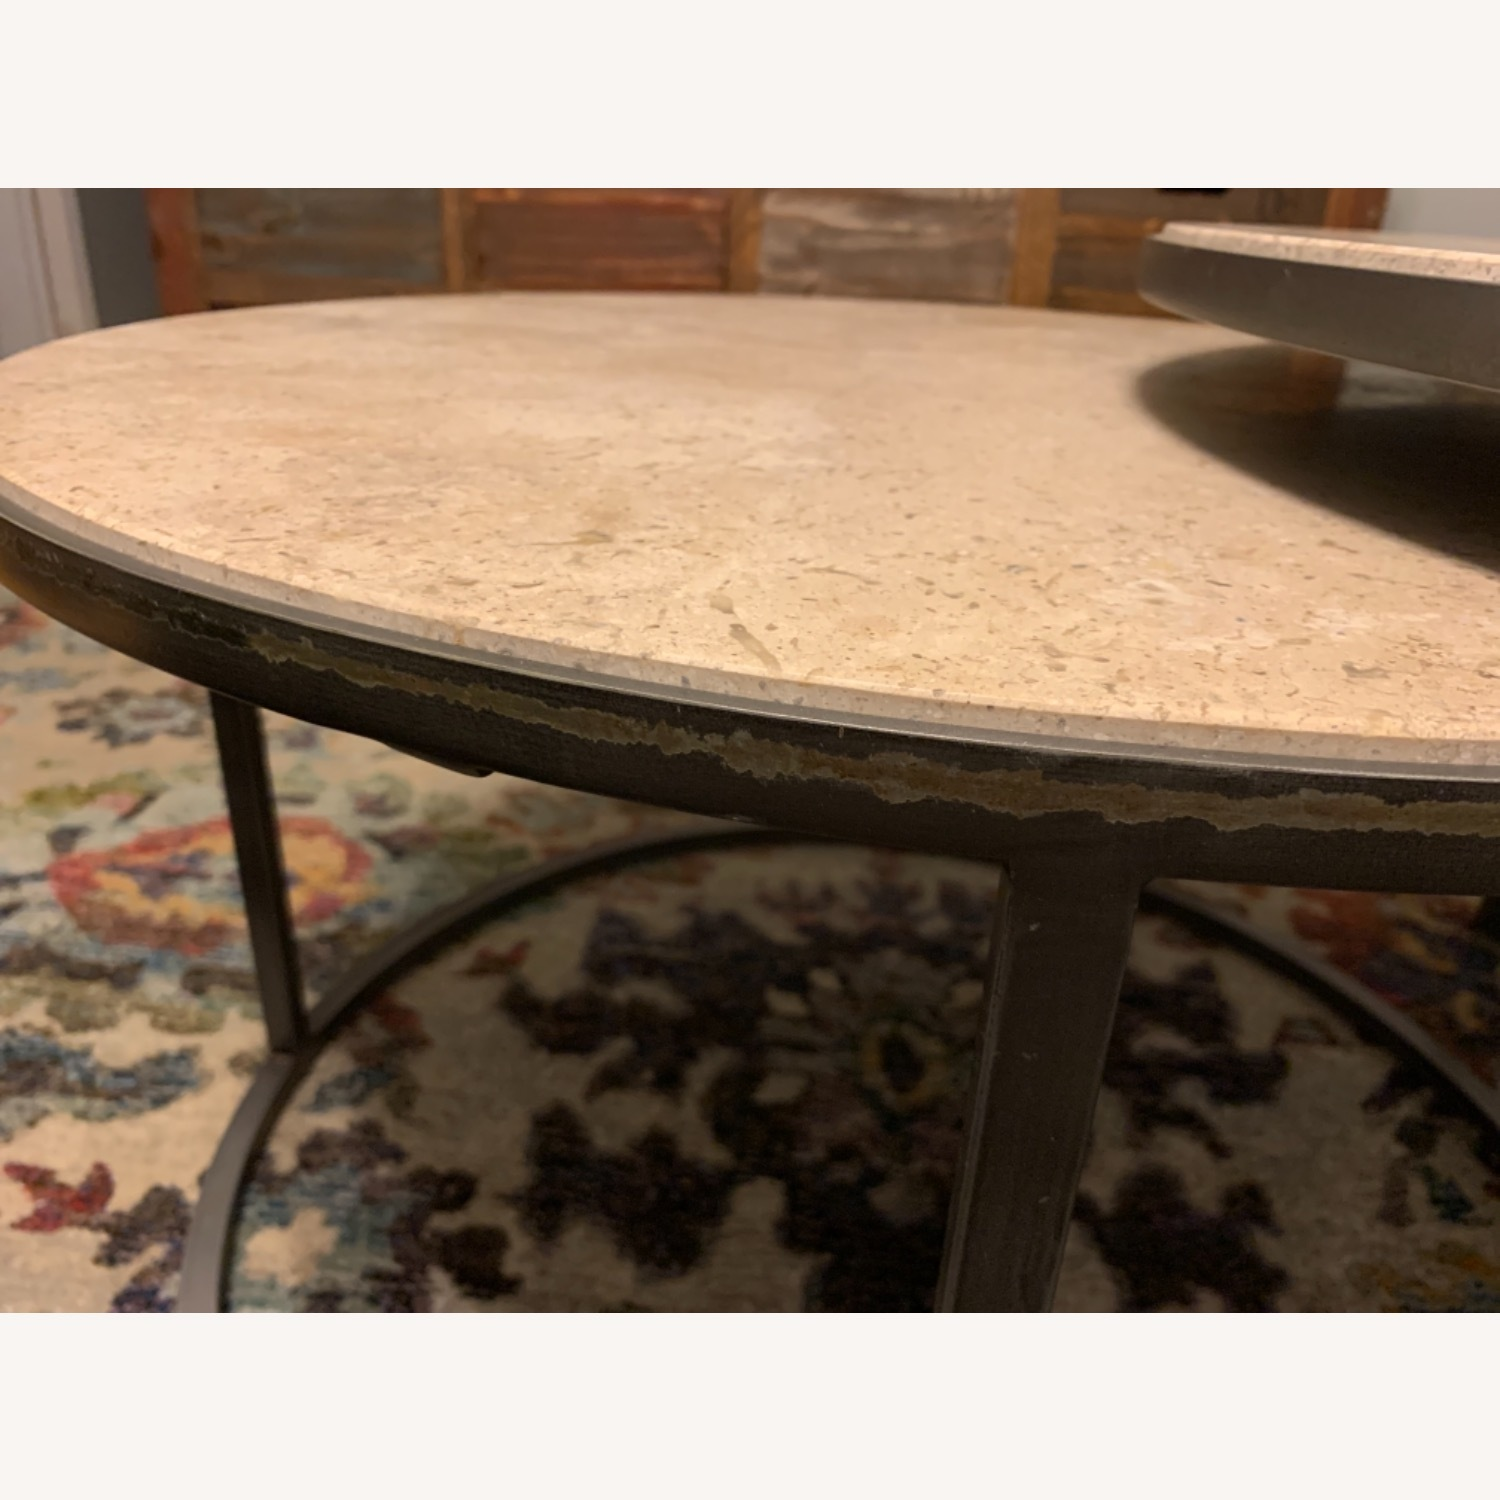 Travertine Marble Nesting Coffee Tables - image-5